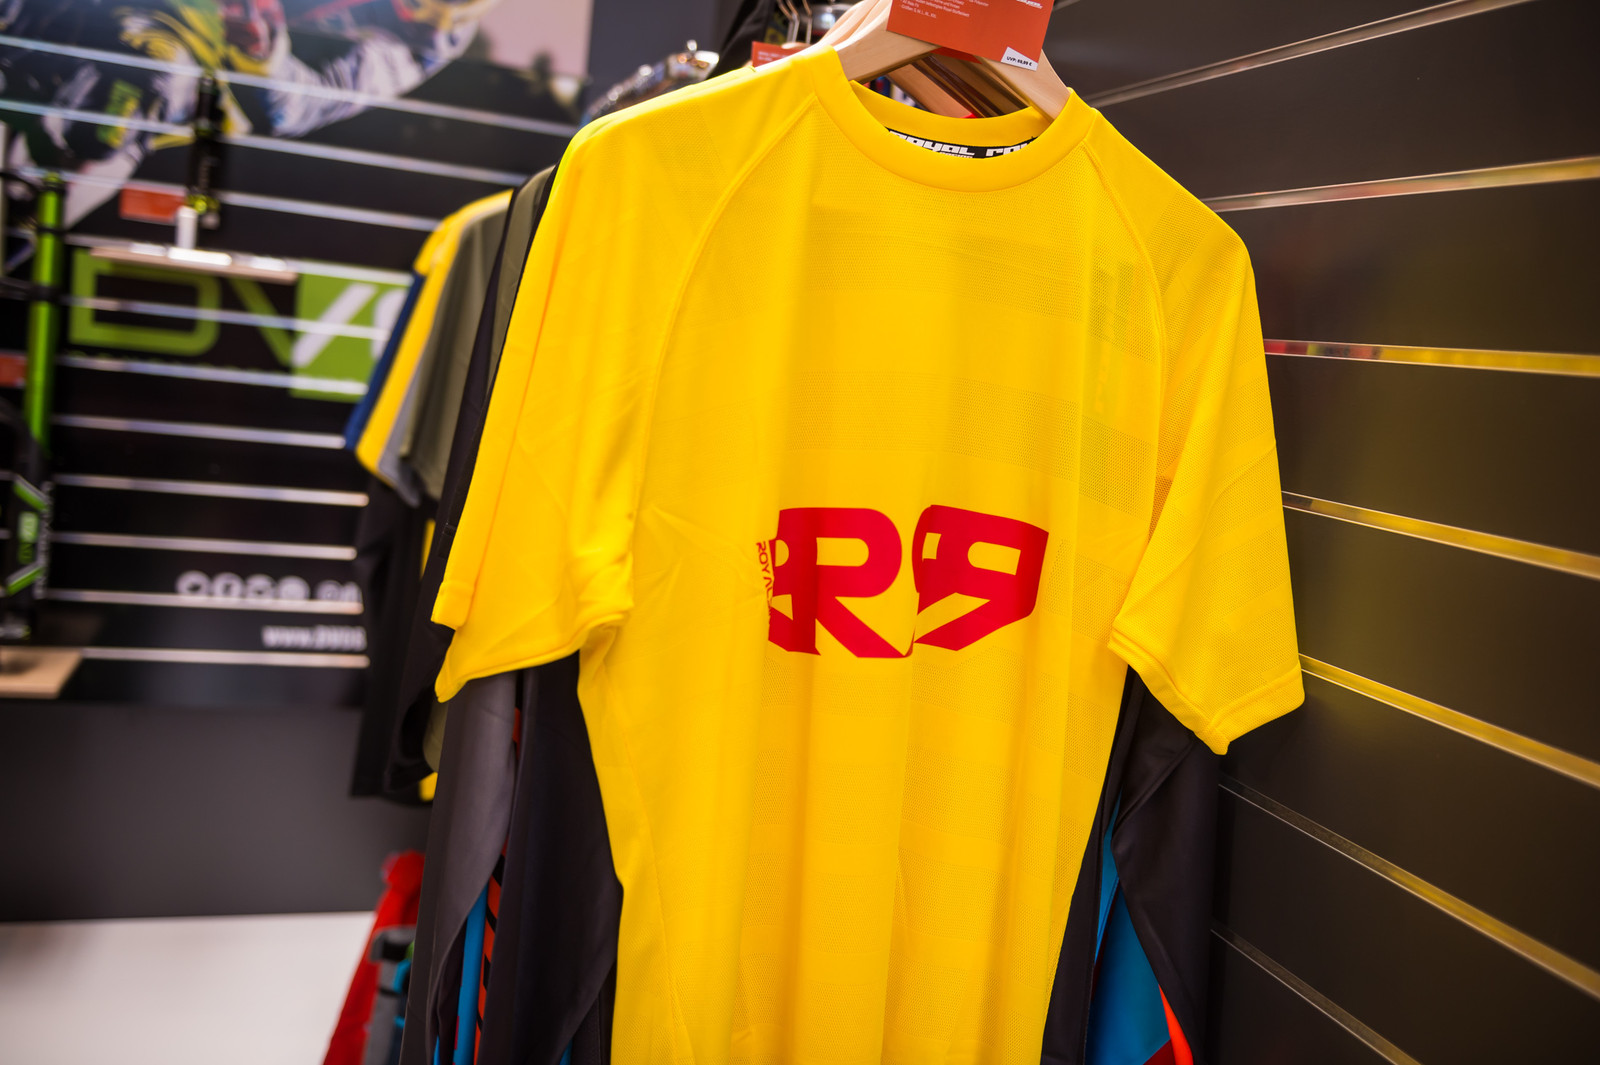 Royal Impact Jersey - EUROBIKE - 2017 Mountain Bike Apparel and Protective Gear - Mountain Biking Pictures - Vital MTB